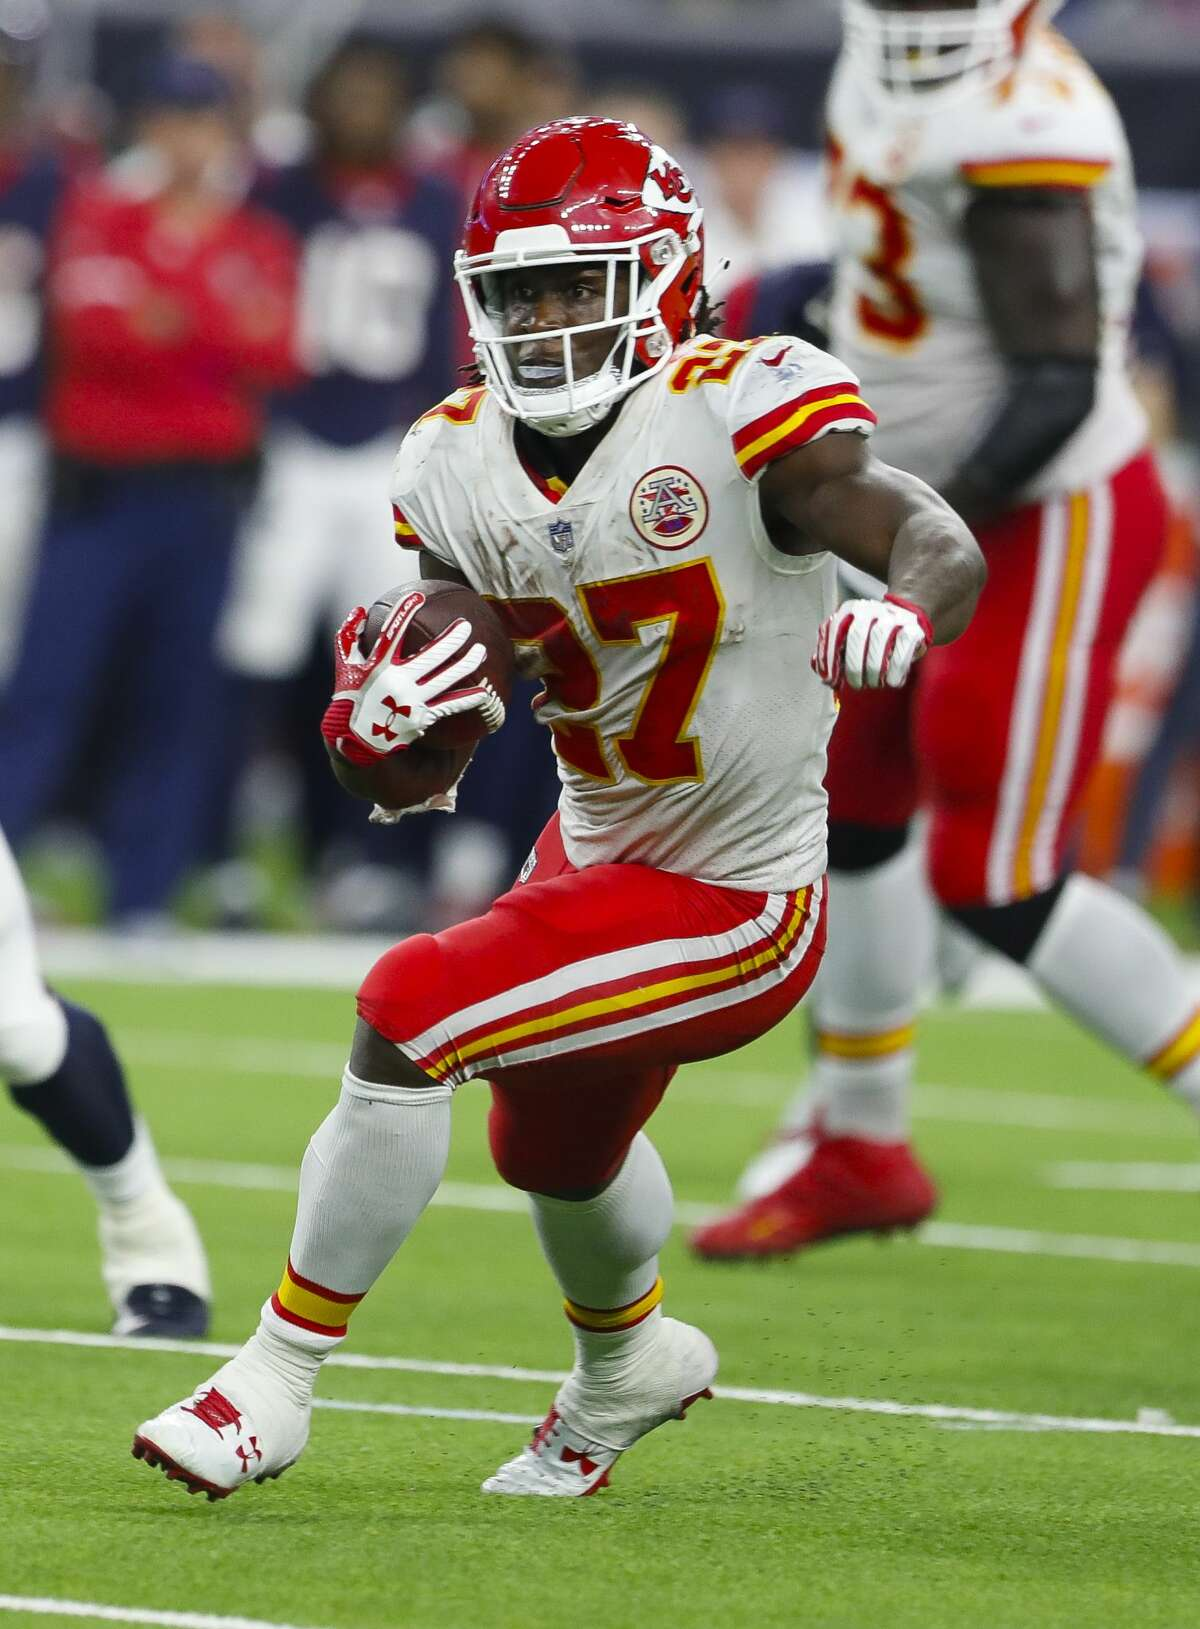 Kansas City Chiefs running back Kareem Hunt (27) runs down field the fourth quarter of an NFL football game at NRG Stadium on Sunday, Oct. 8, 2017, in Houston. ( Brett Coomer / Houston Chronicle )